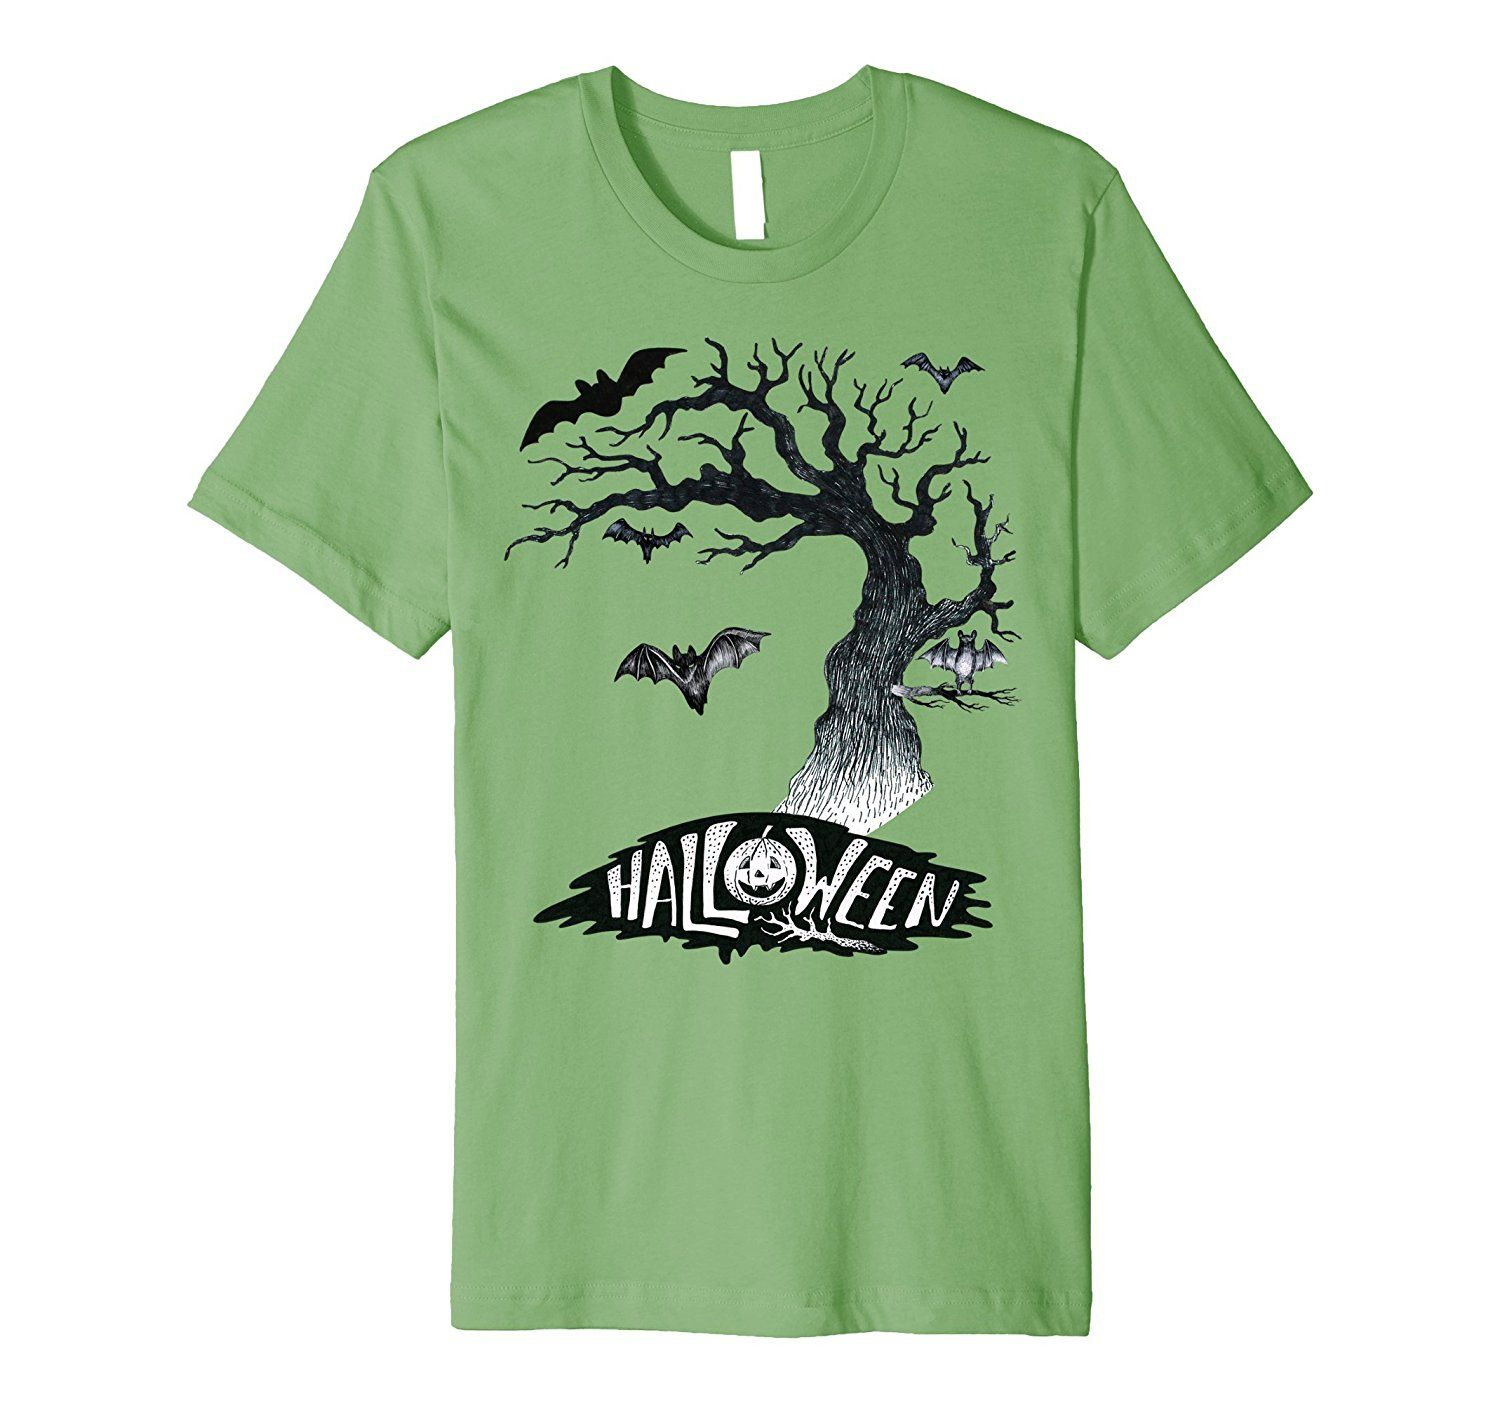 Delightfully scary halloween costume t shirts for kids adults delightfully scary halloween costume t shirts for kids adults solutioingenieria Choice Image